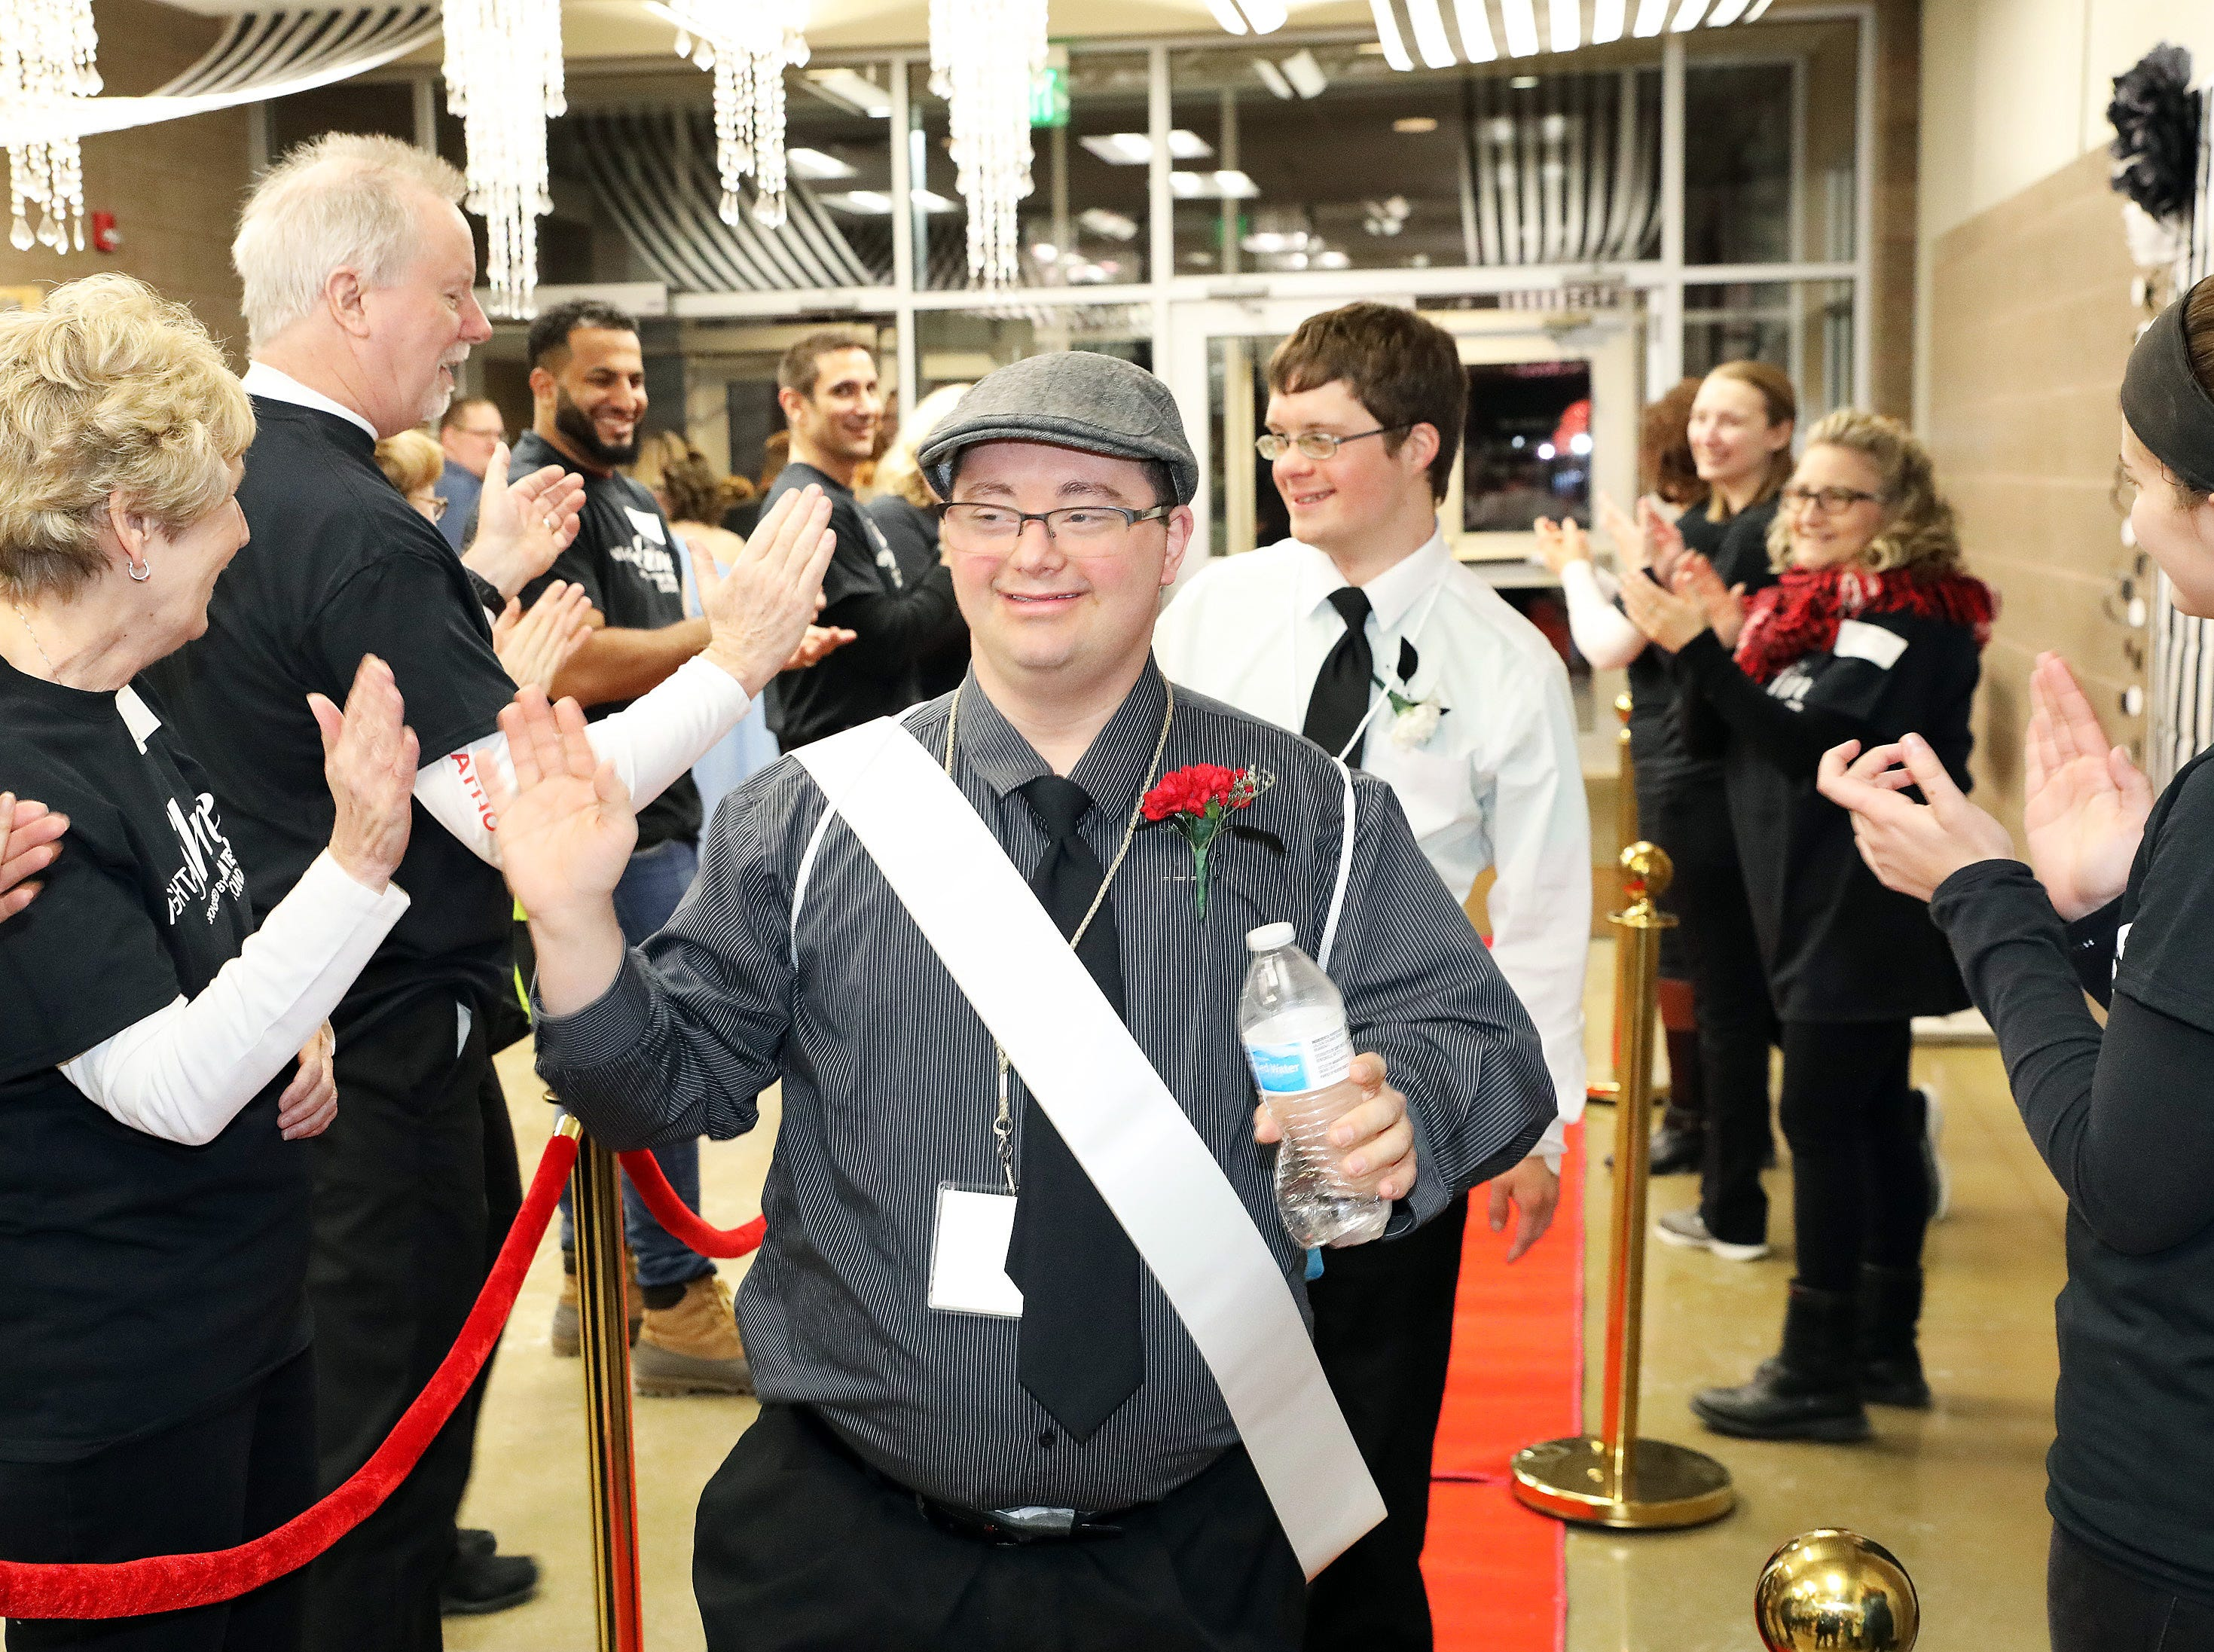 Jake Tyler is greeted with applause as he enters on the red carpet during the Night to Shine event at Prairie Ridge Church in Ankeny on Friday, Feb. 8, 2019. Sponsored by the Tim Tebow Foundation, the event for adults with special needs features a prom-like atmosphere with dancing, limo rides, food and more.